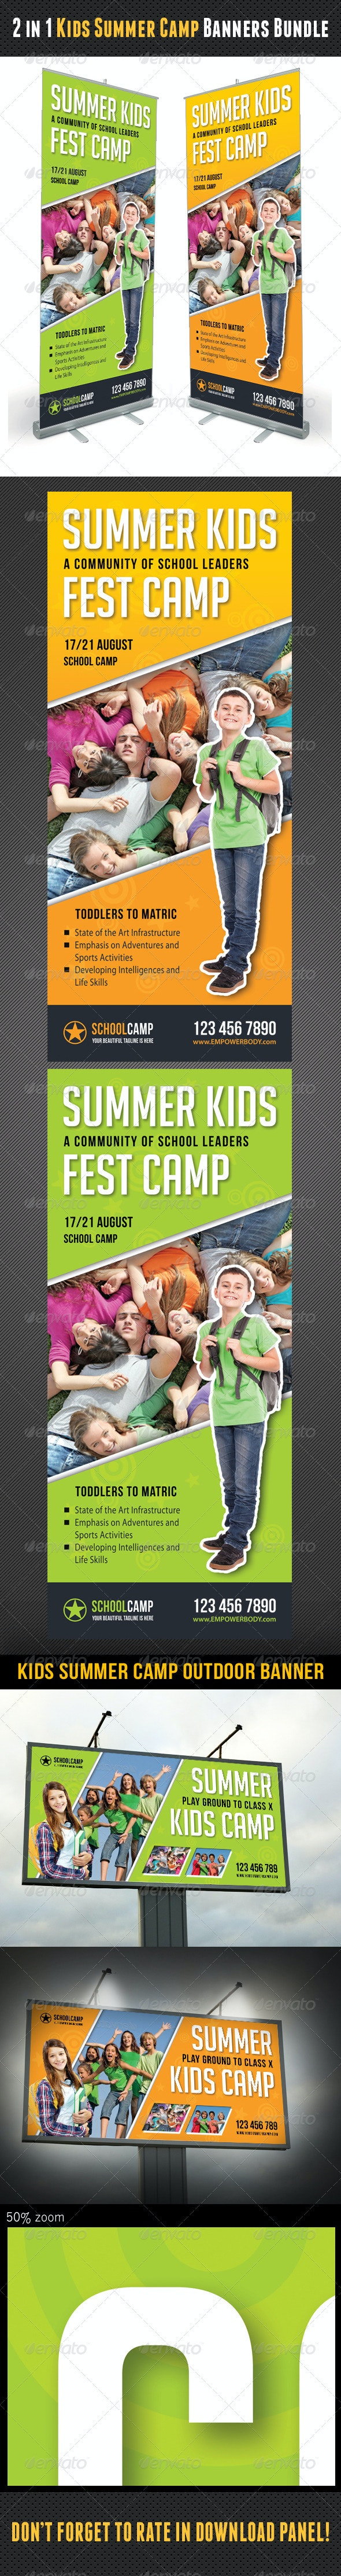 2 in 1 Kids Summer Camp Banners Bundle - Signage Print Templates